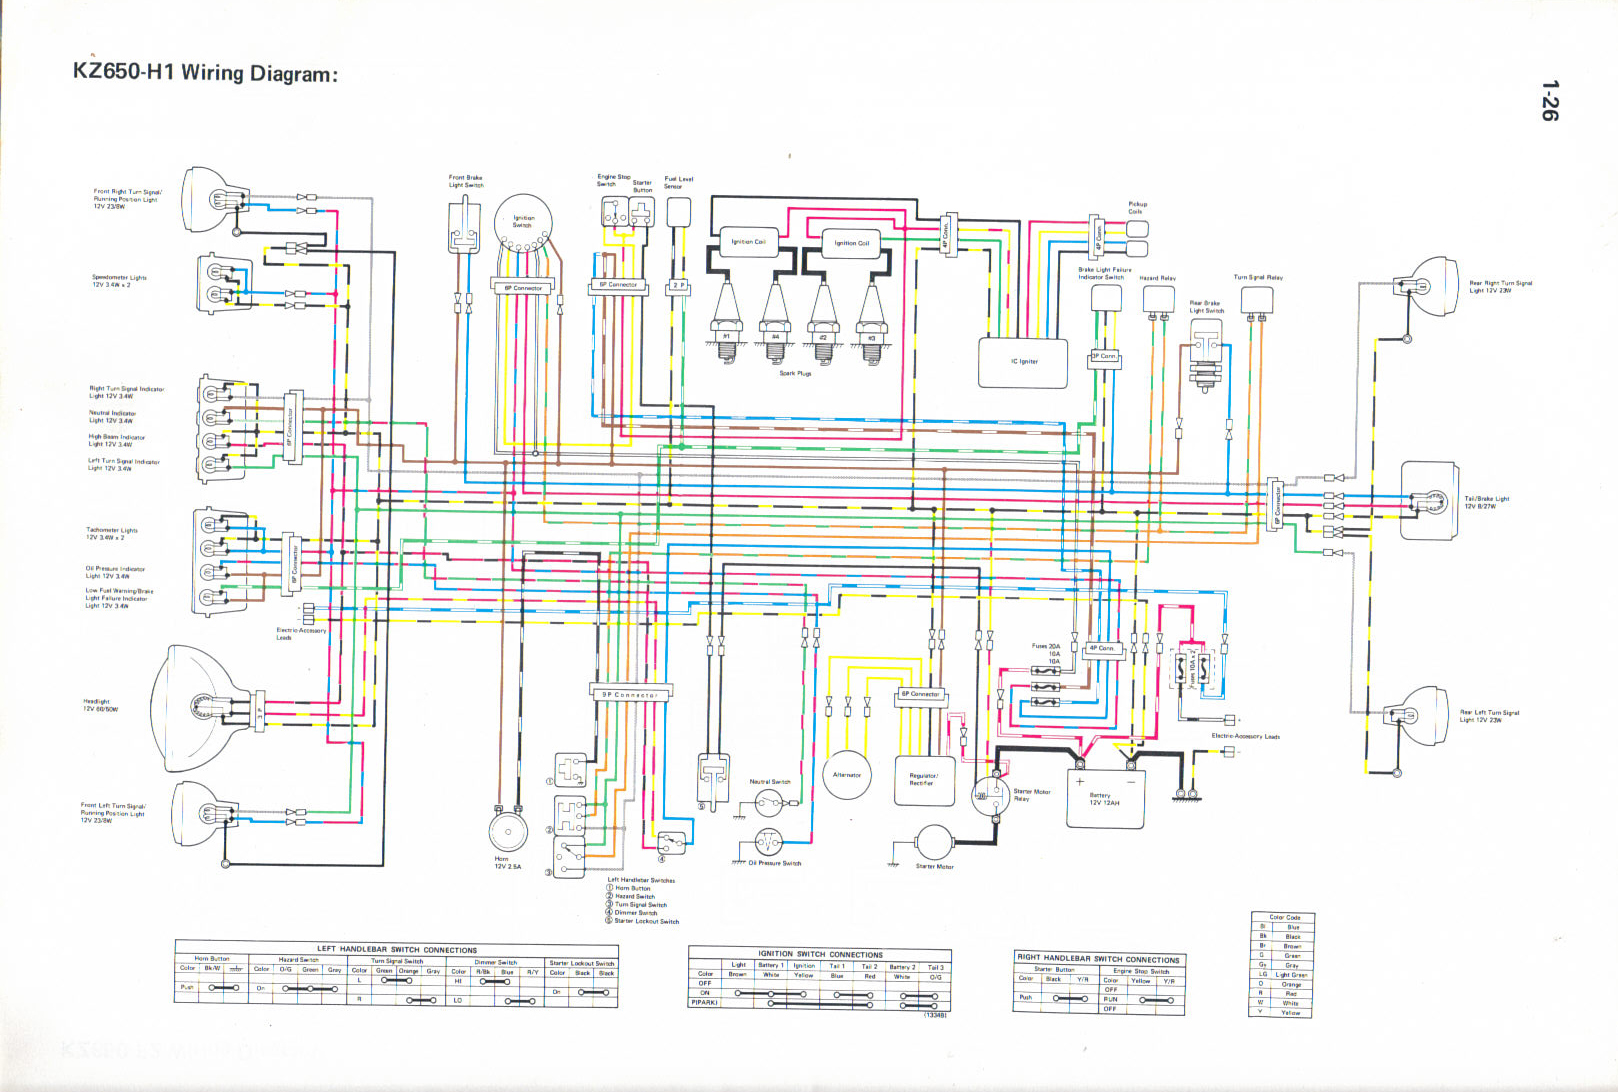 Kawasaki Kz650 Wiring Diagram Will Be A Thing Ex500 20 Images 1979 B2